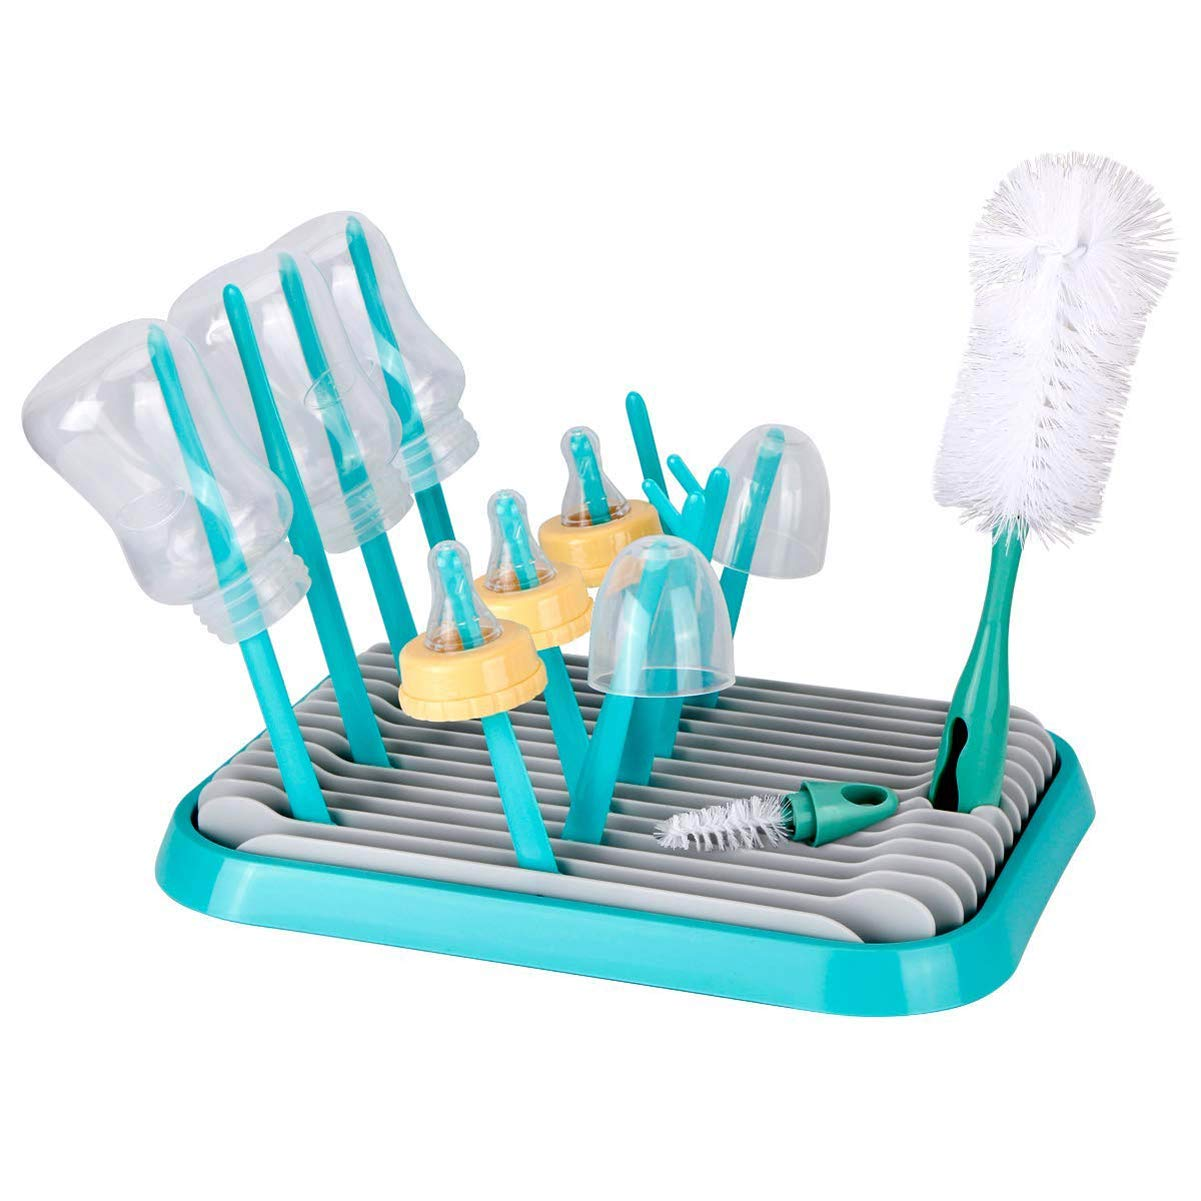 Baby Bottle Drying Rack with Bottle Cleaning Brush Set/Plastic Bag and Bottle Dryer - Drying Rack Saves Money and The Planet Folds for Easy Storage